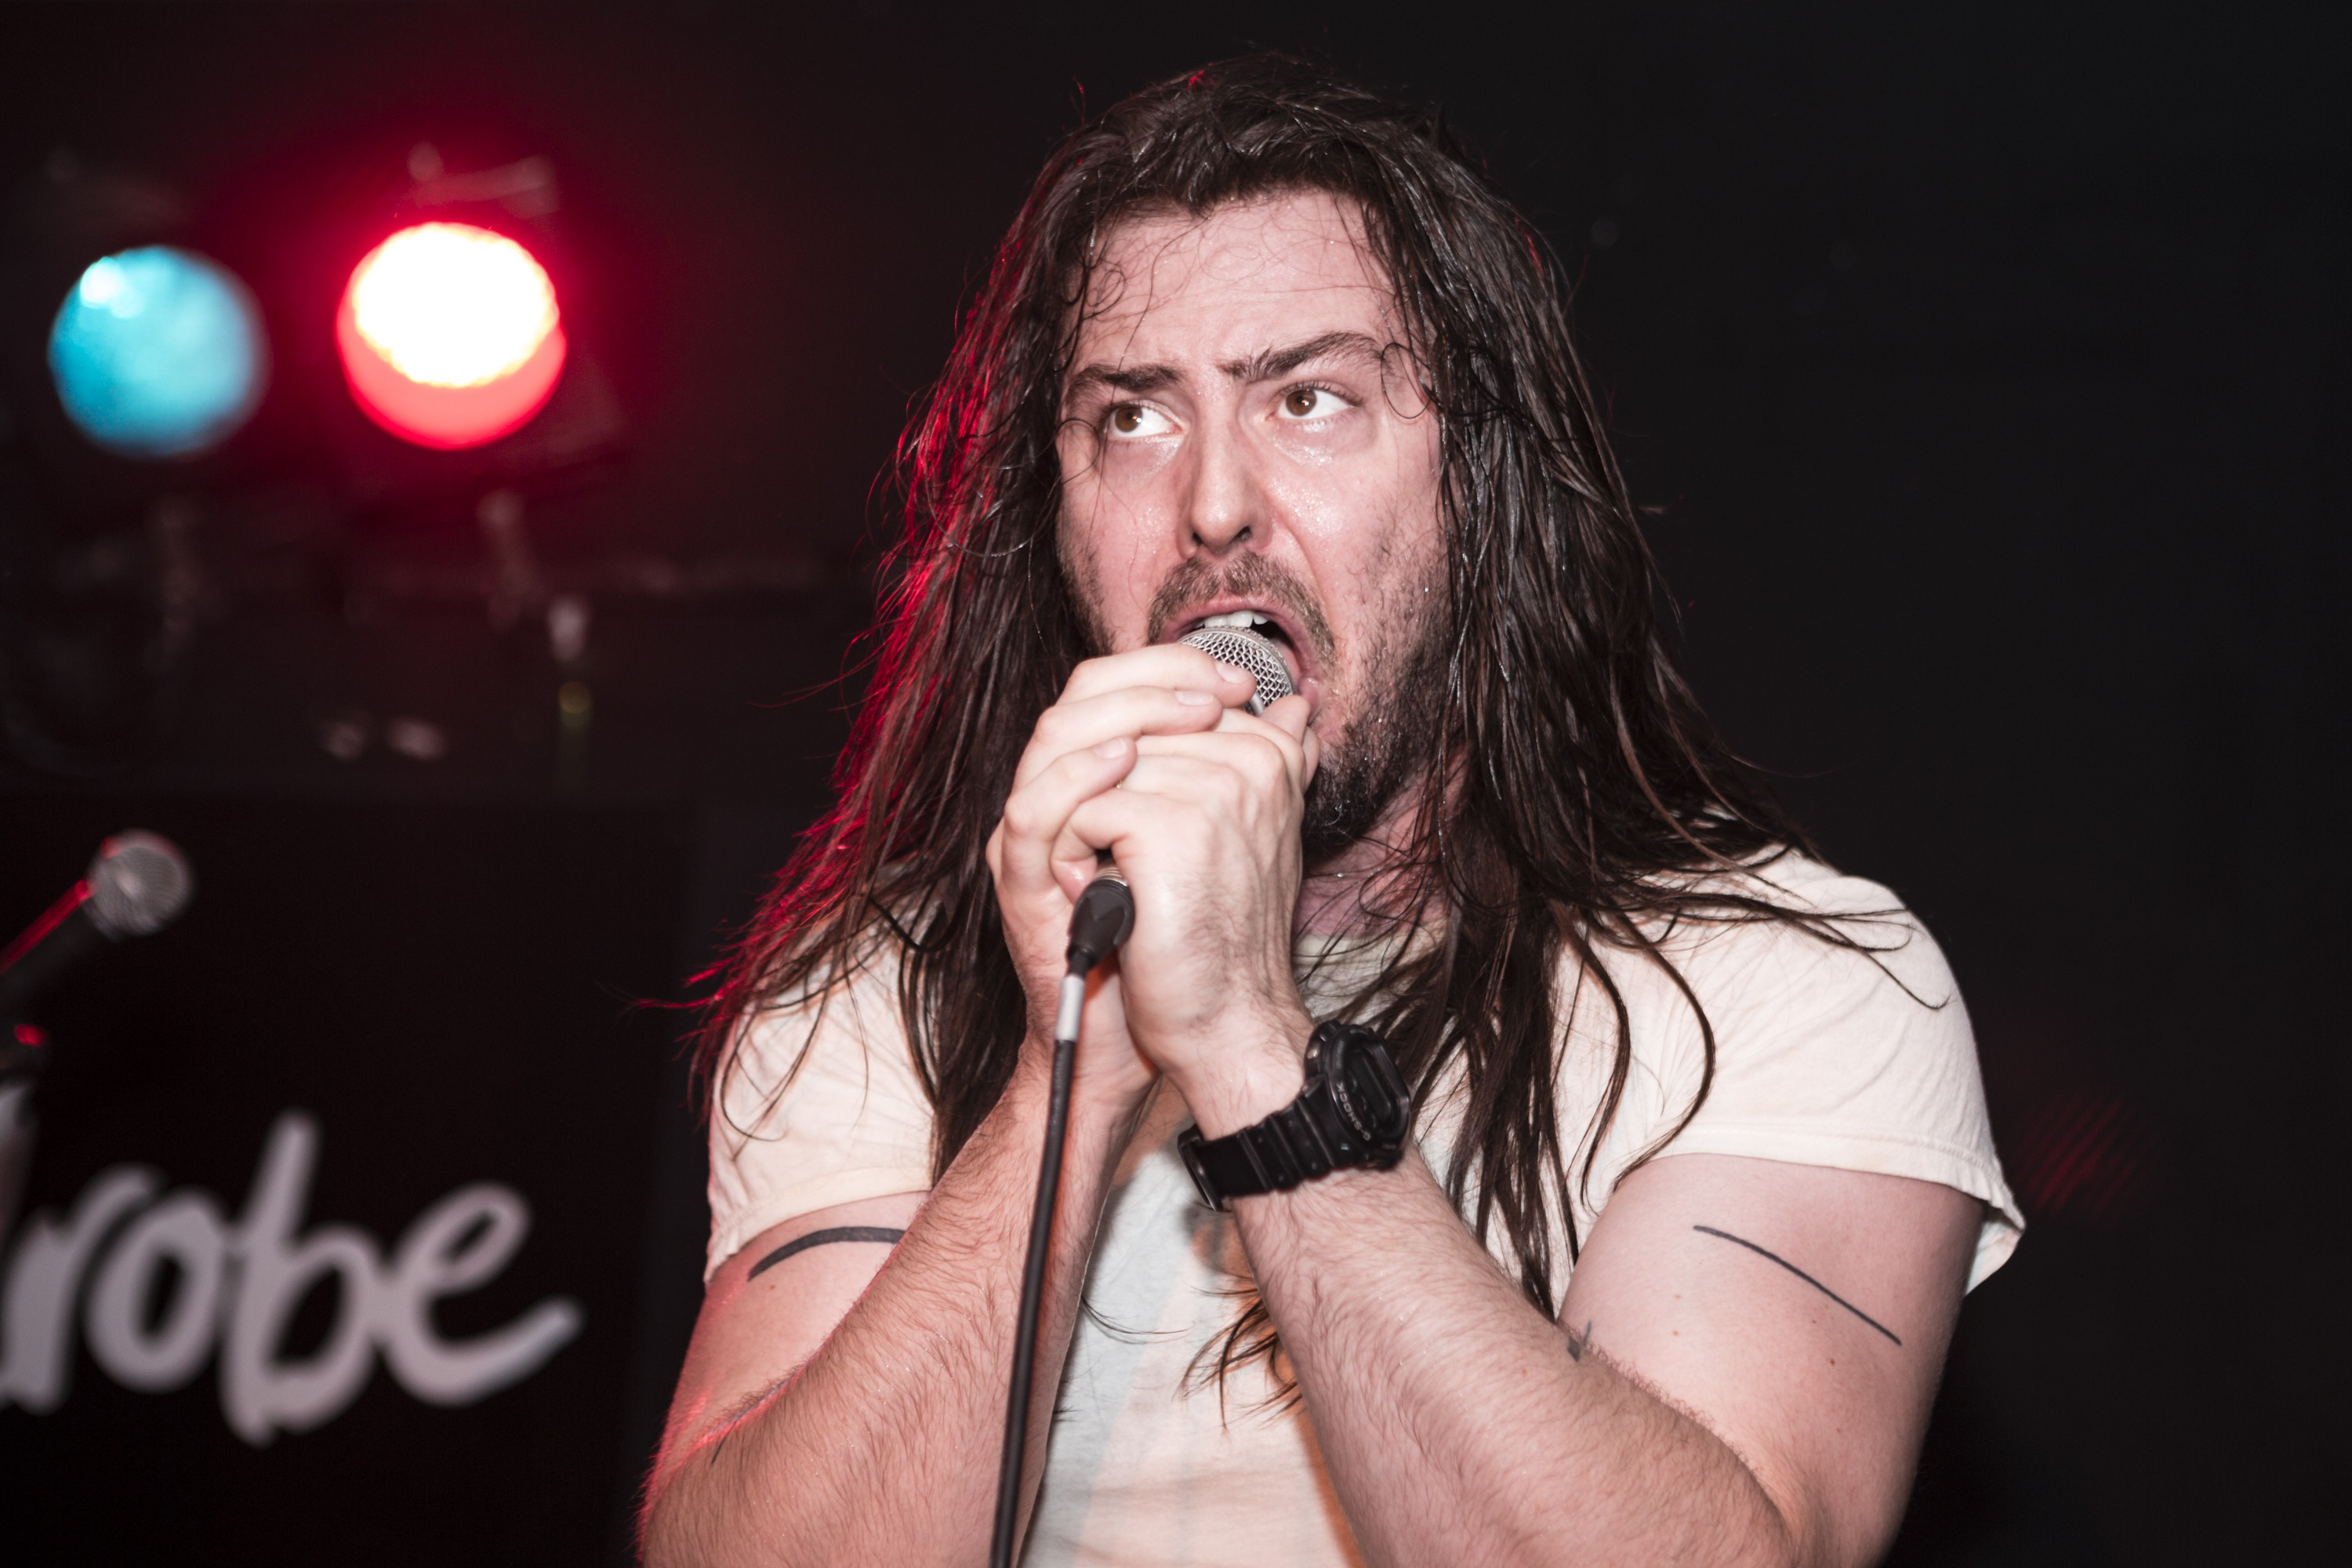 Andrew W.K Performs At The Wardrobe In Leeds